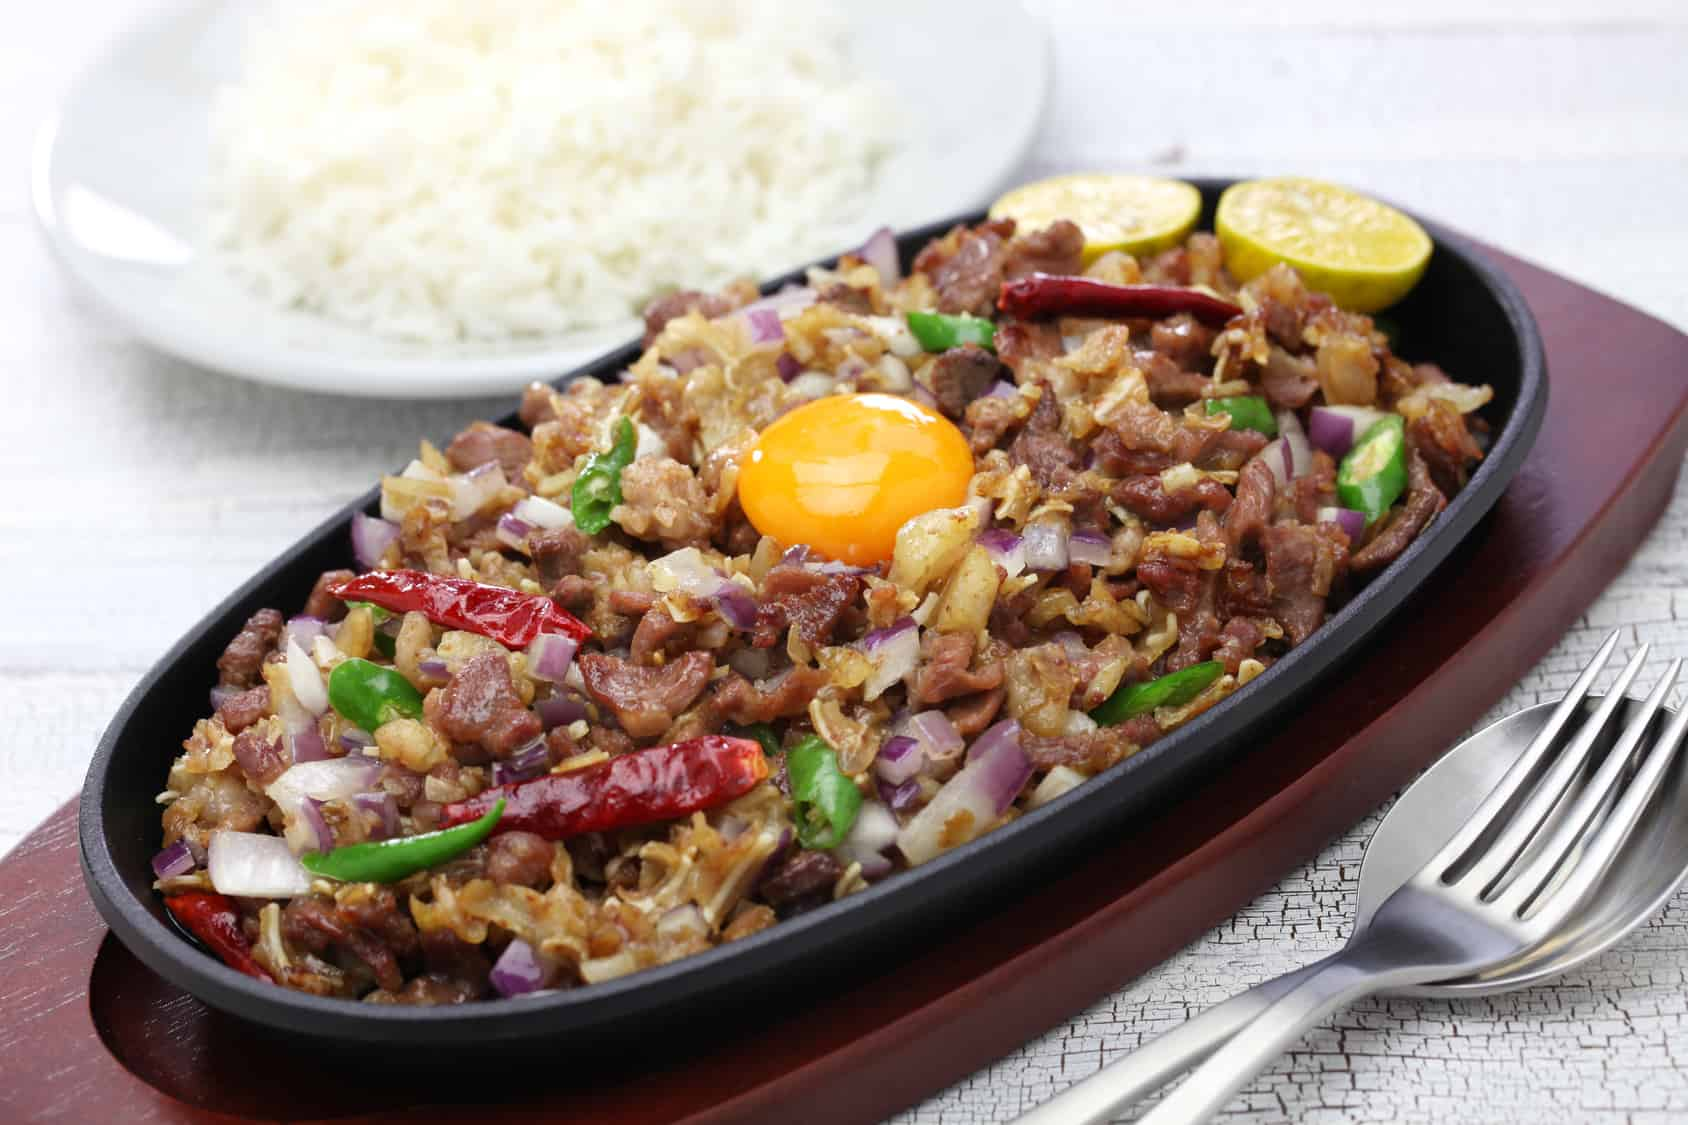 The Philippines: Trying out the Food